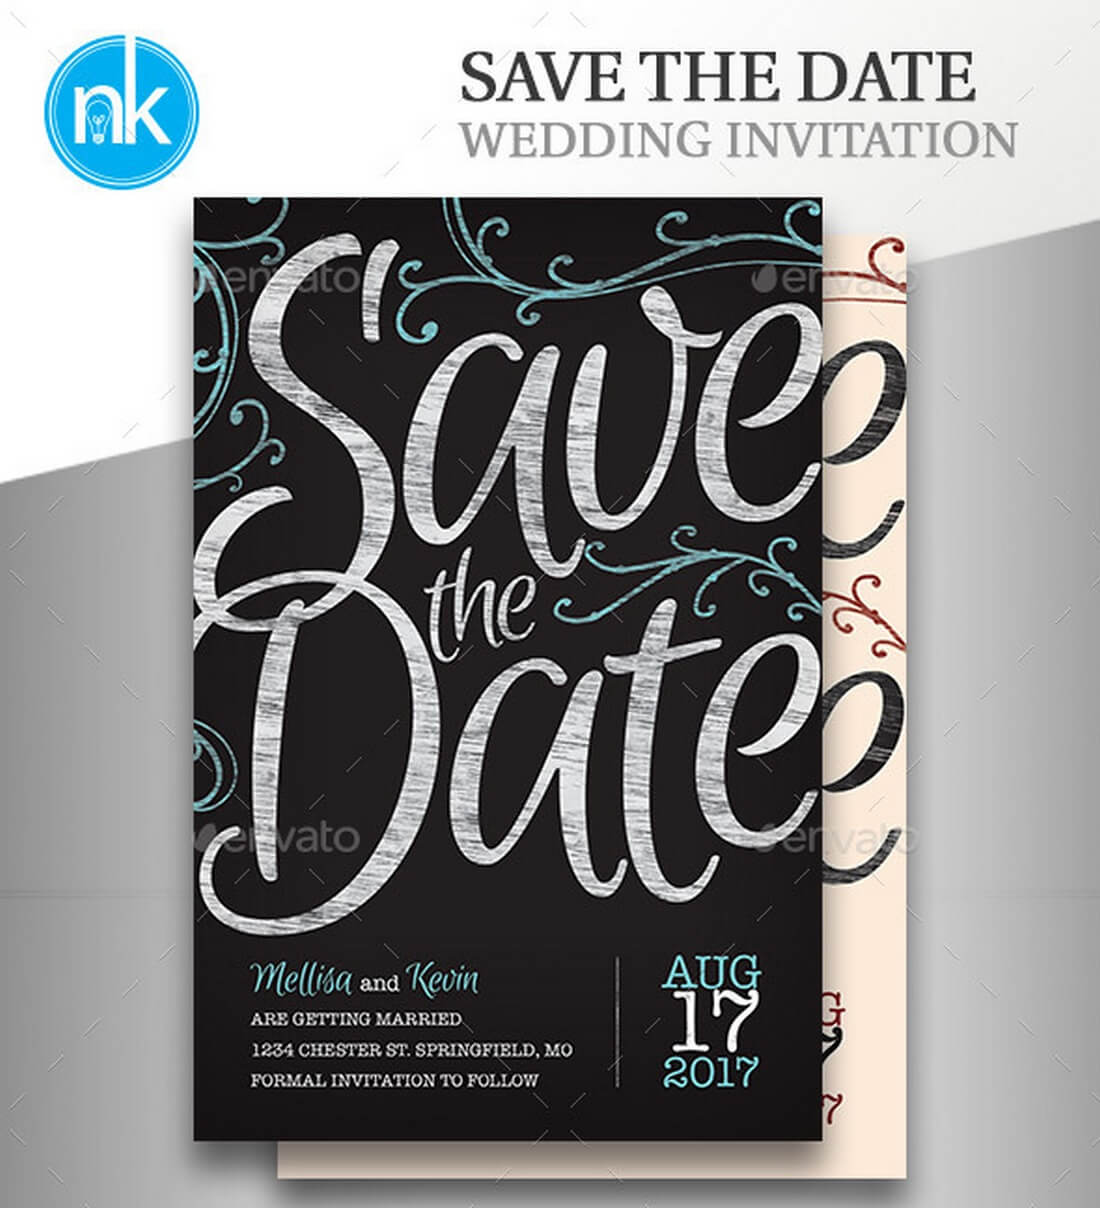 save-the-date-postcard-chalkboard-vintage